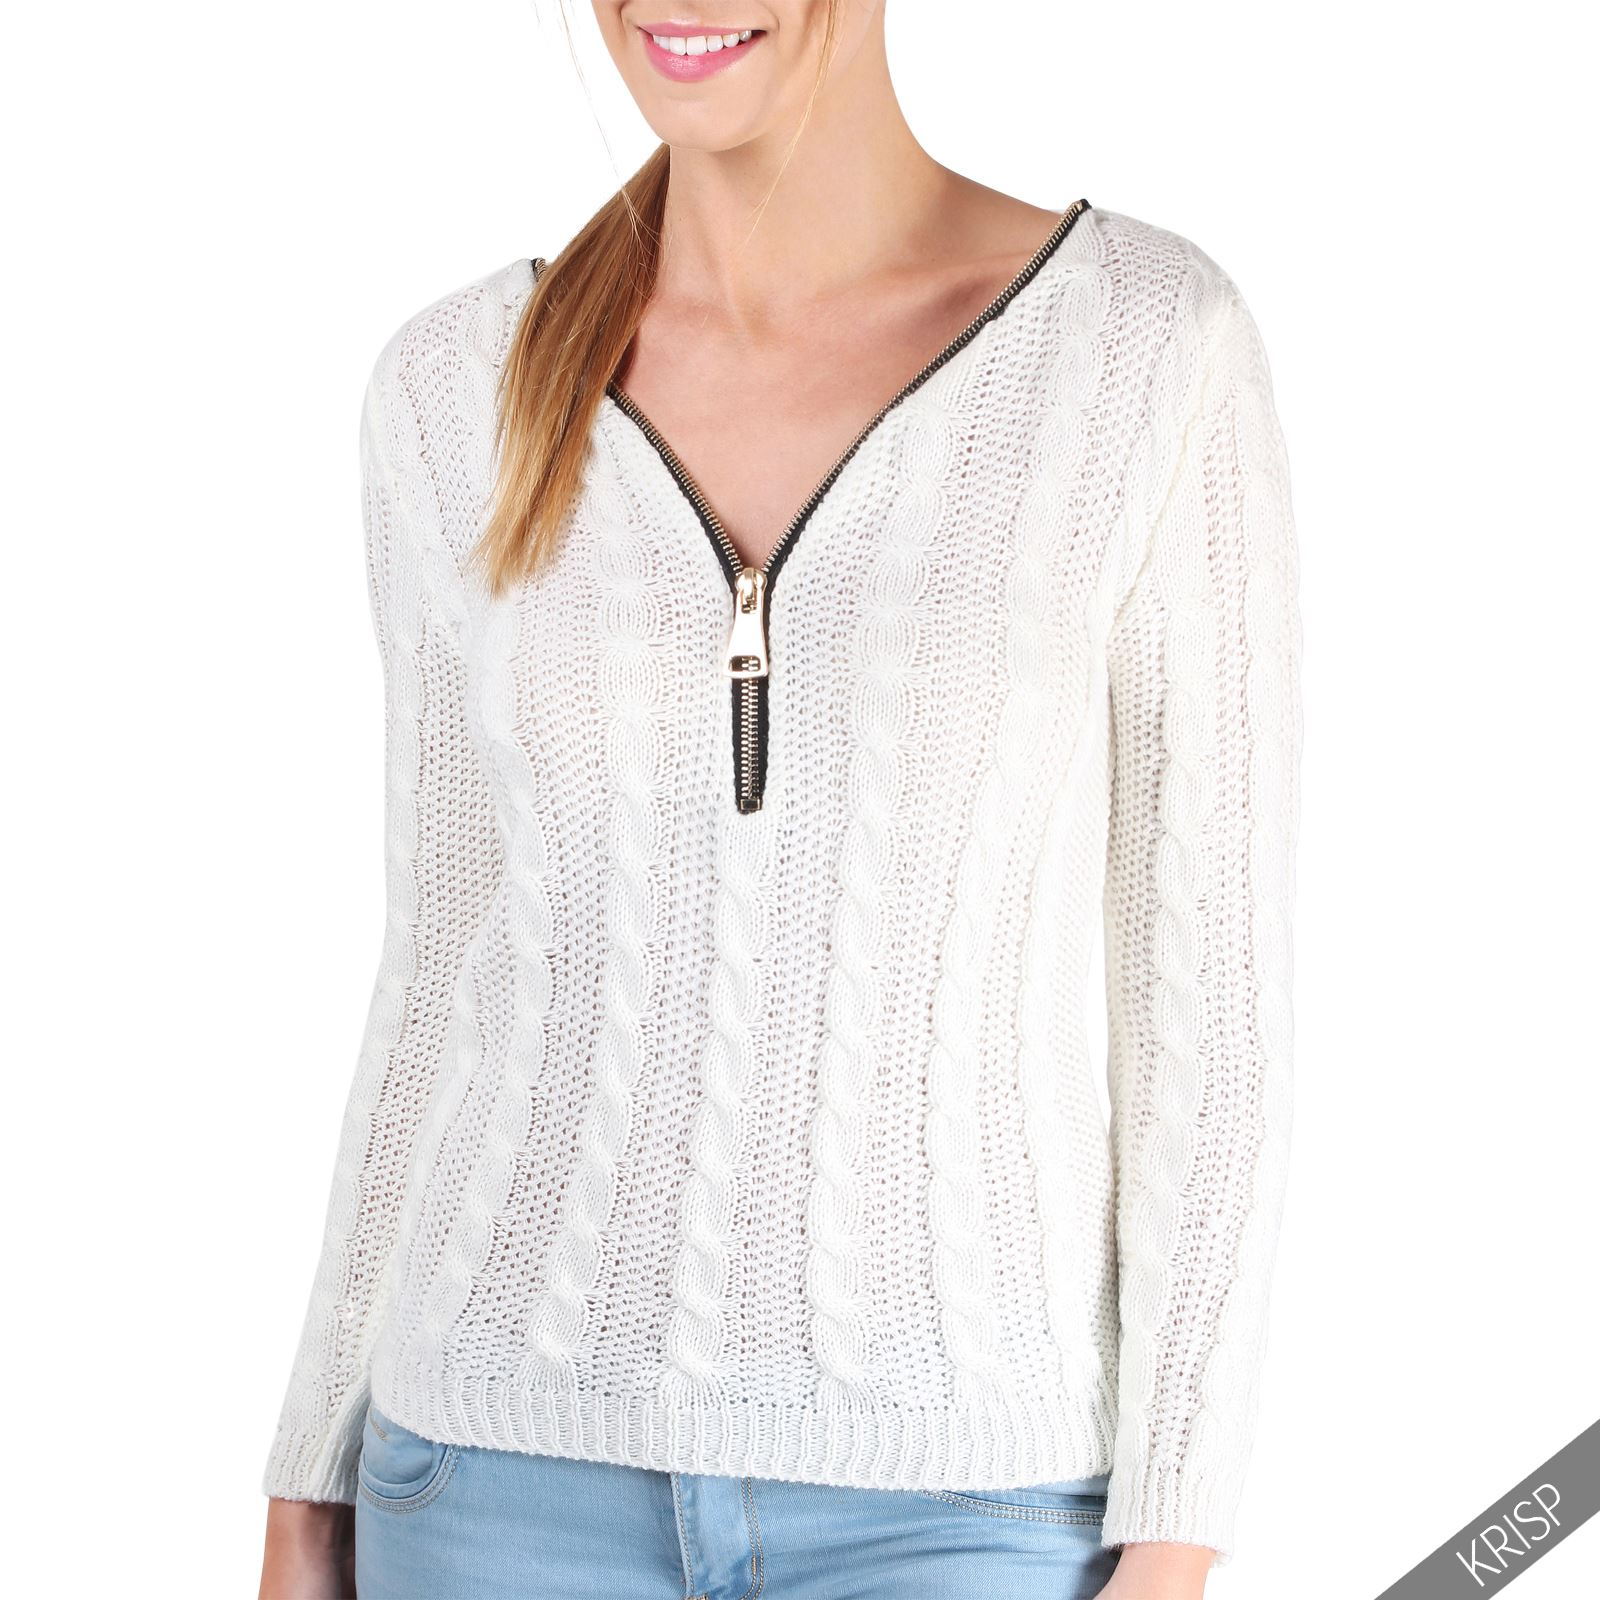 Women's Pullovers. Patterns preceded by an asterisk (*) are in PDF format. Boat Neck Raglan Pullover Sweater Boden Yoked Pullover Bold Diamonds Pullover Bond Lace Pullover Botany Cowl Neck Pullover + Cable-knit Pullover Cabled Hoodie Cabled Pulligan + Cabled Pullover And Cowl.